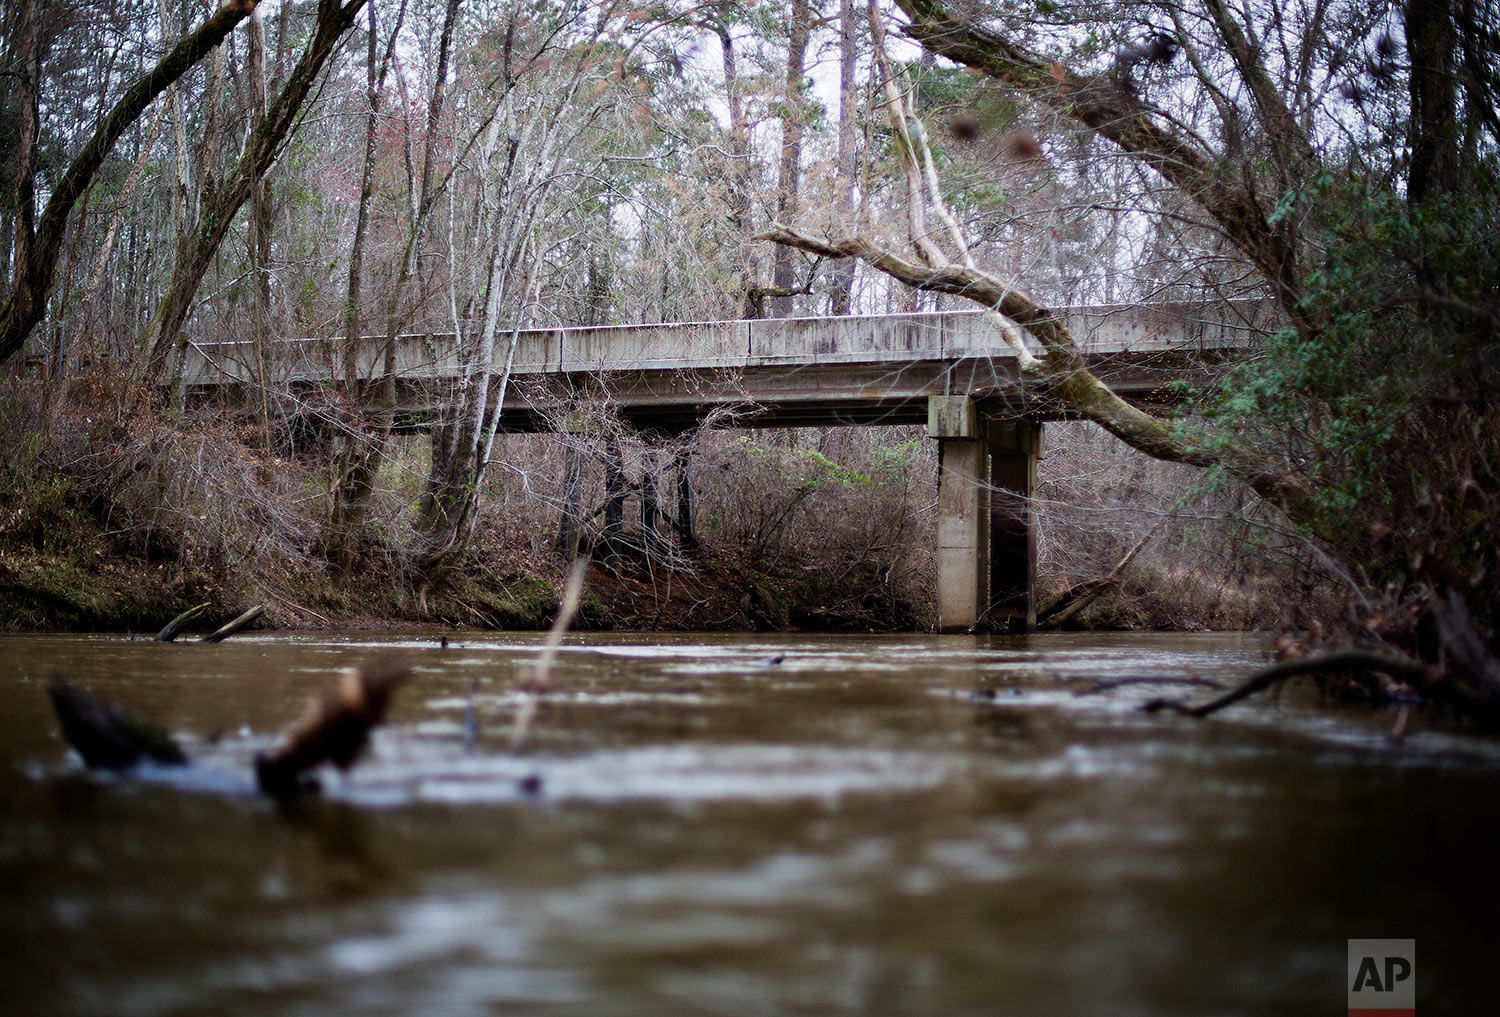 This Feb. 22, 2018 photo shows a bridge that spans the Apalachee River at Moore's Ford Road where in 1946 two young black couples were stopped by a white mob who dragged them to the riverbank and shot them multiple times in Monroe, Ga. (AP Photo/David Goldman)